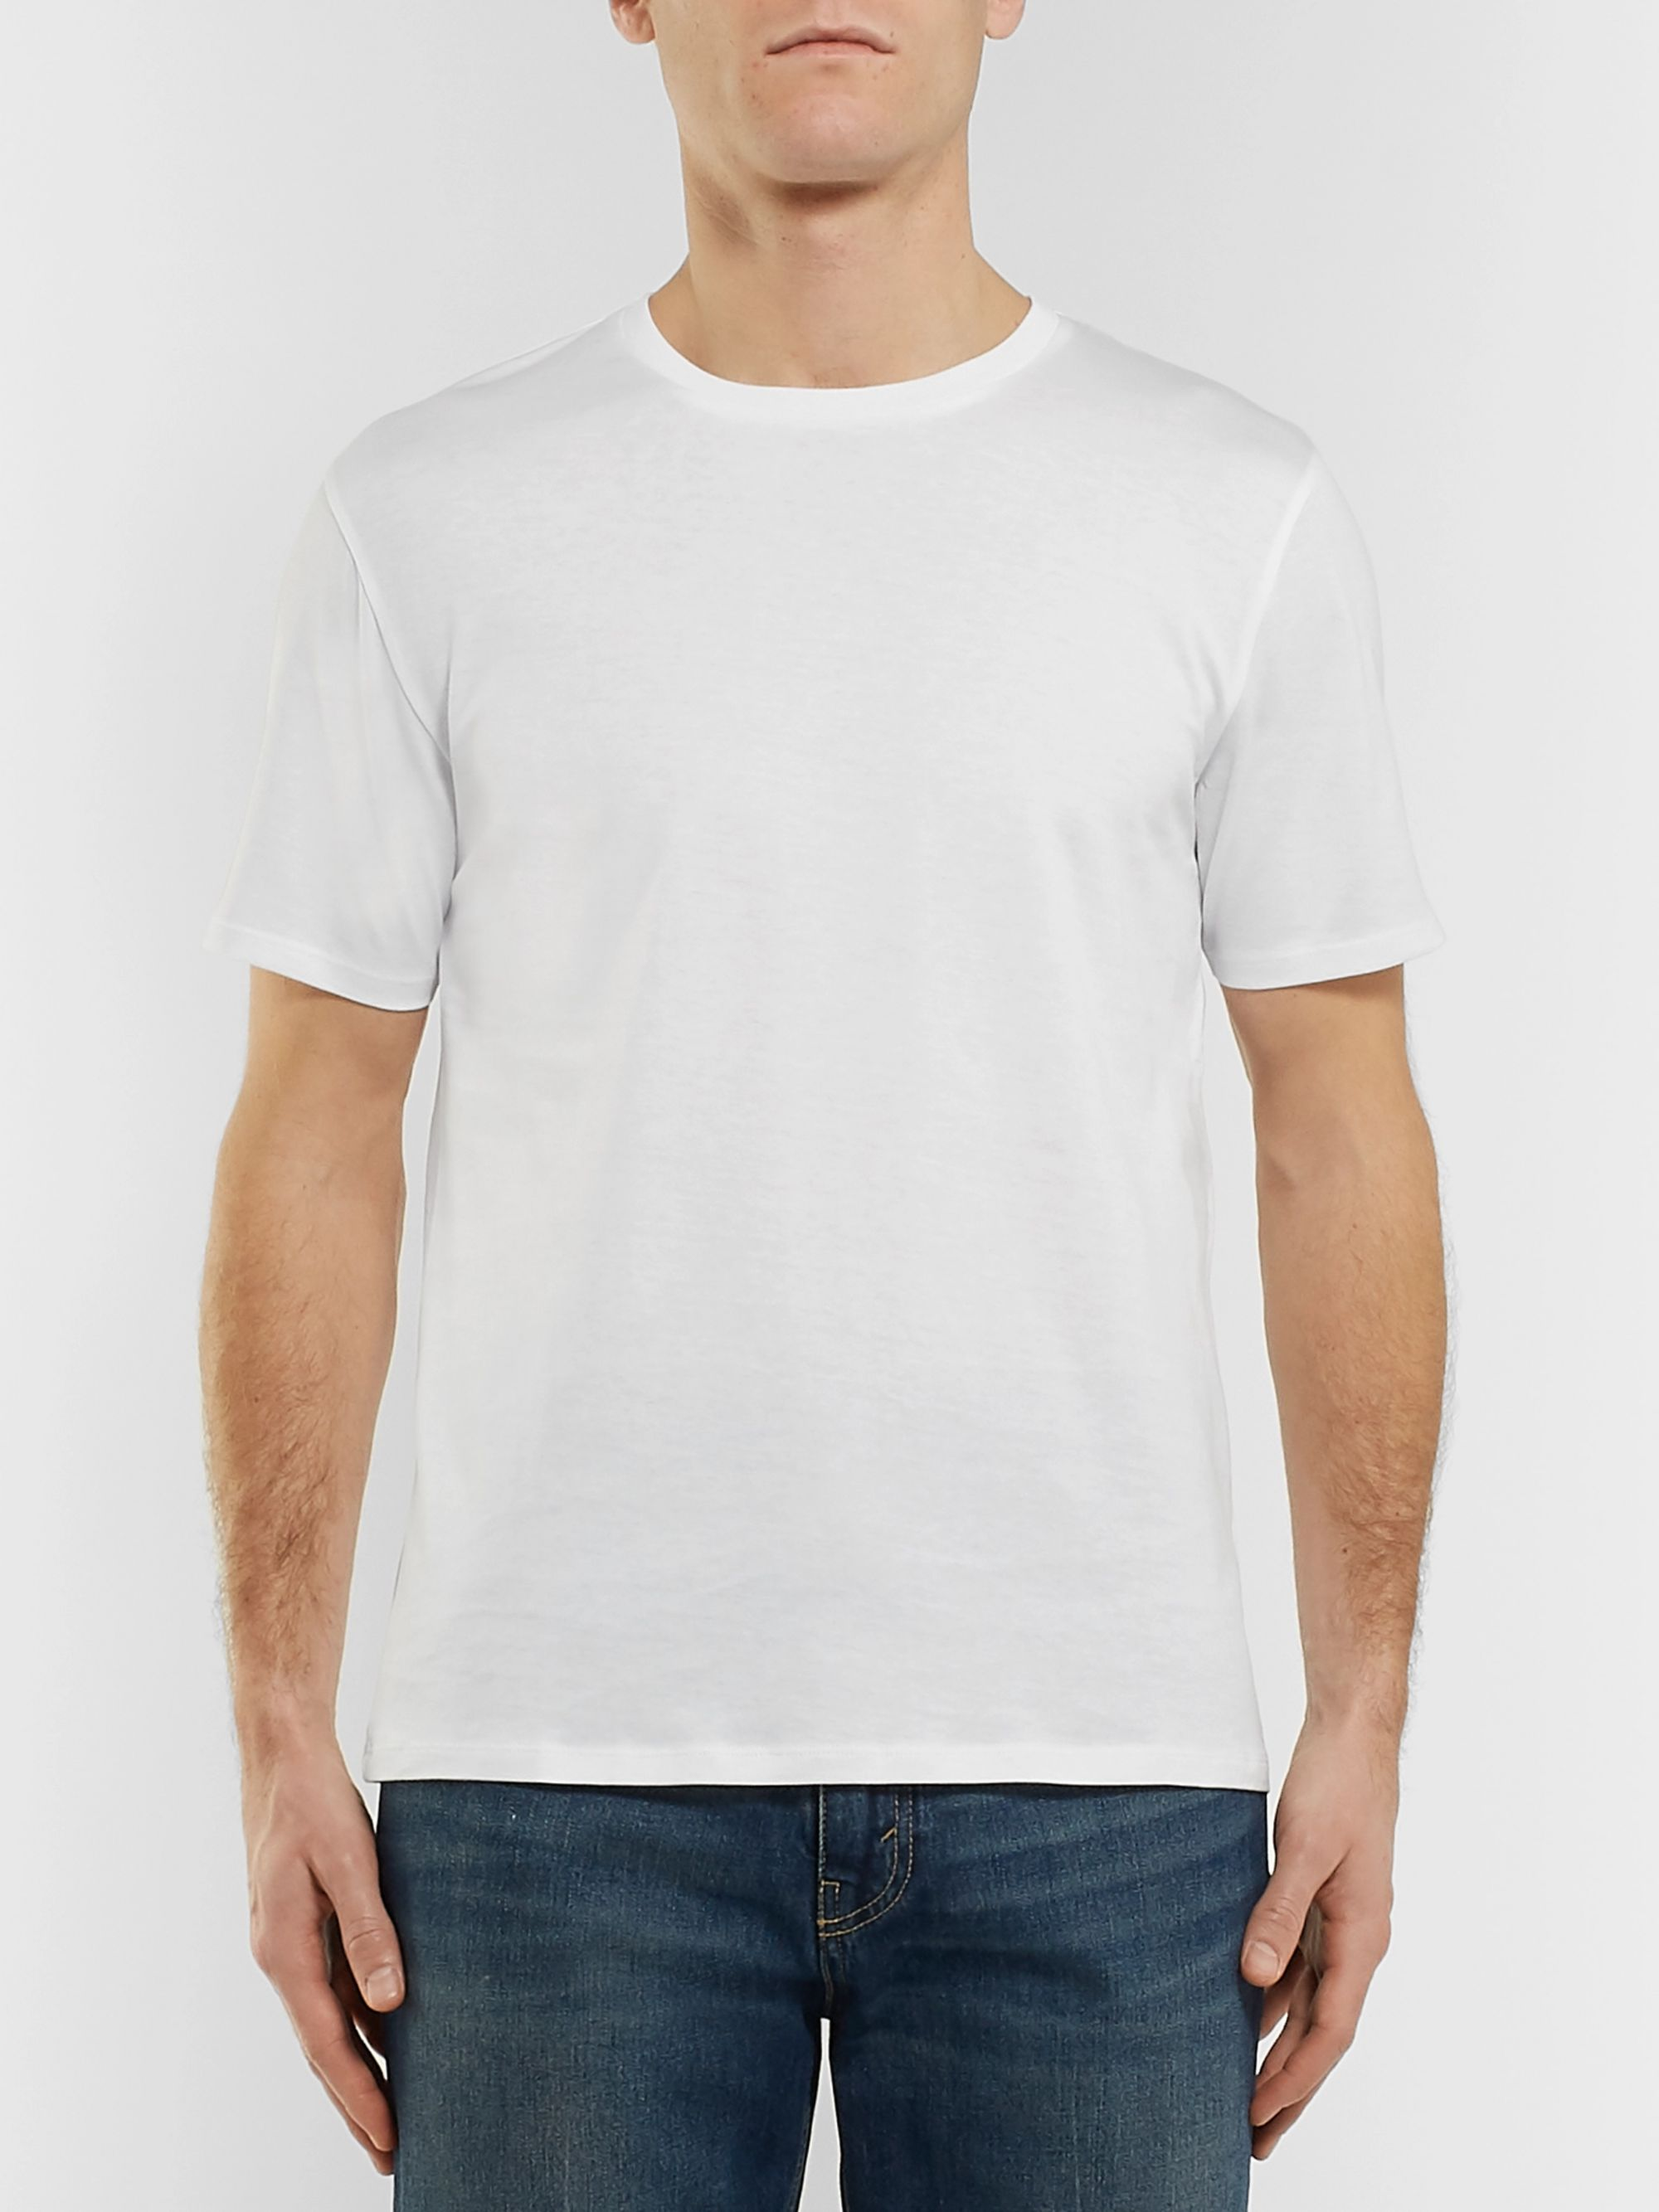 Acne Studios Measure Cotton-Jersey T-Shirt